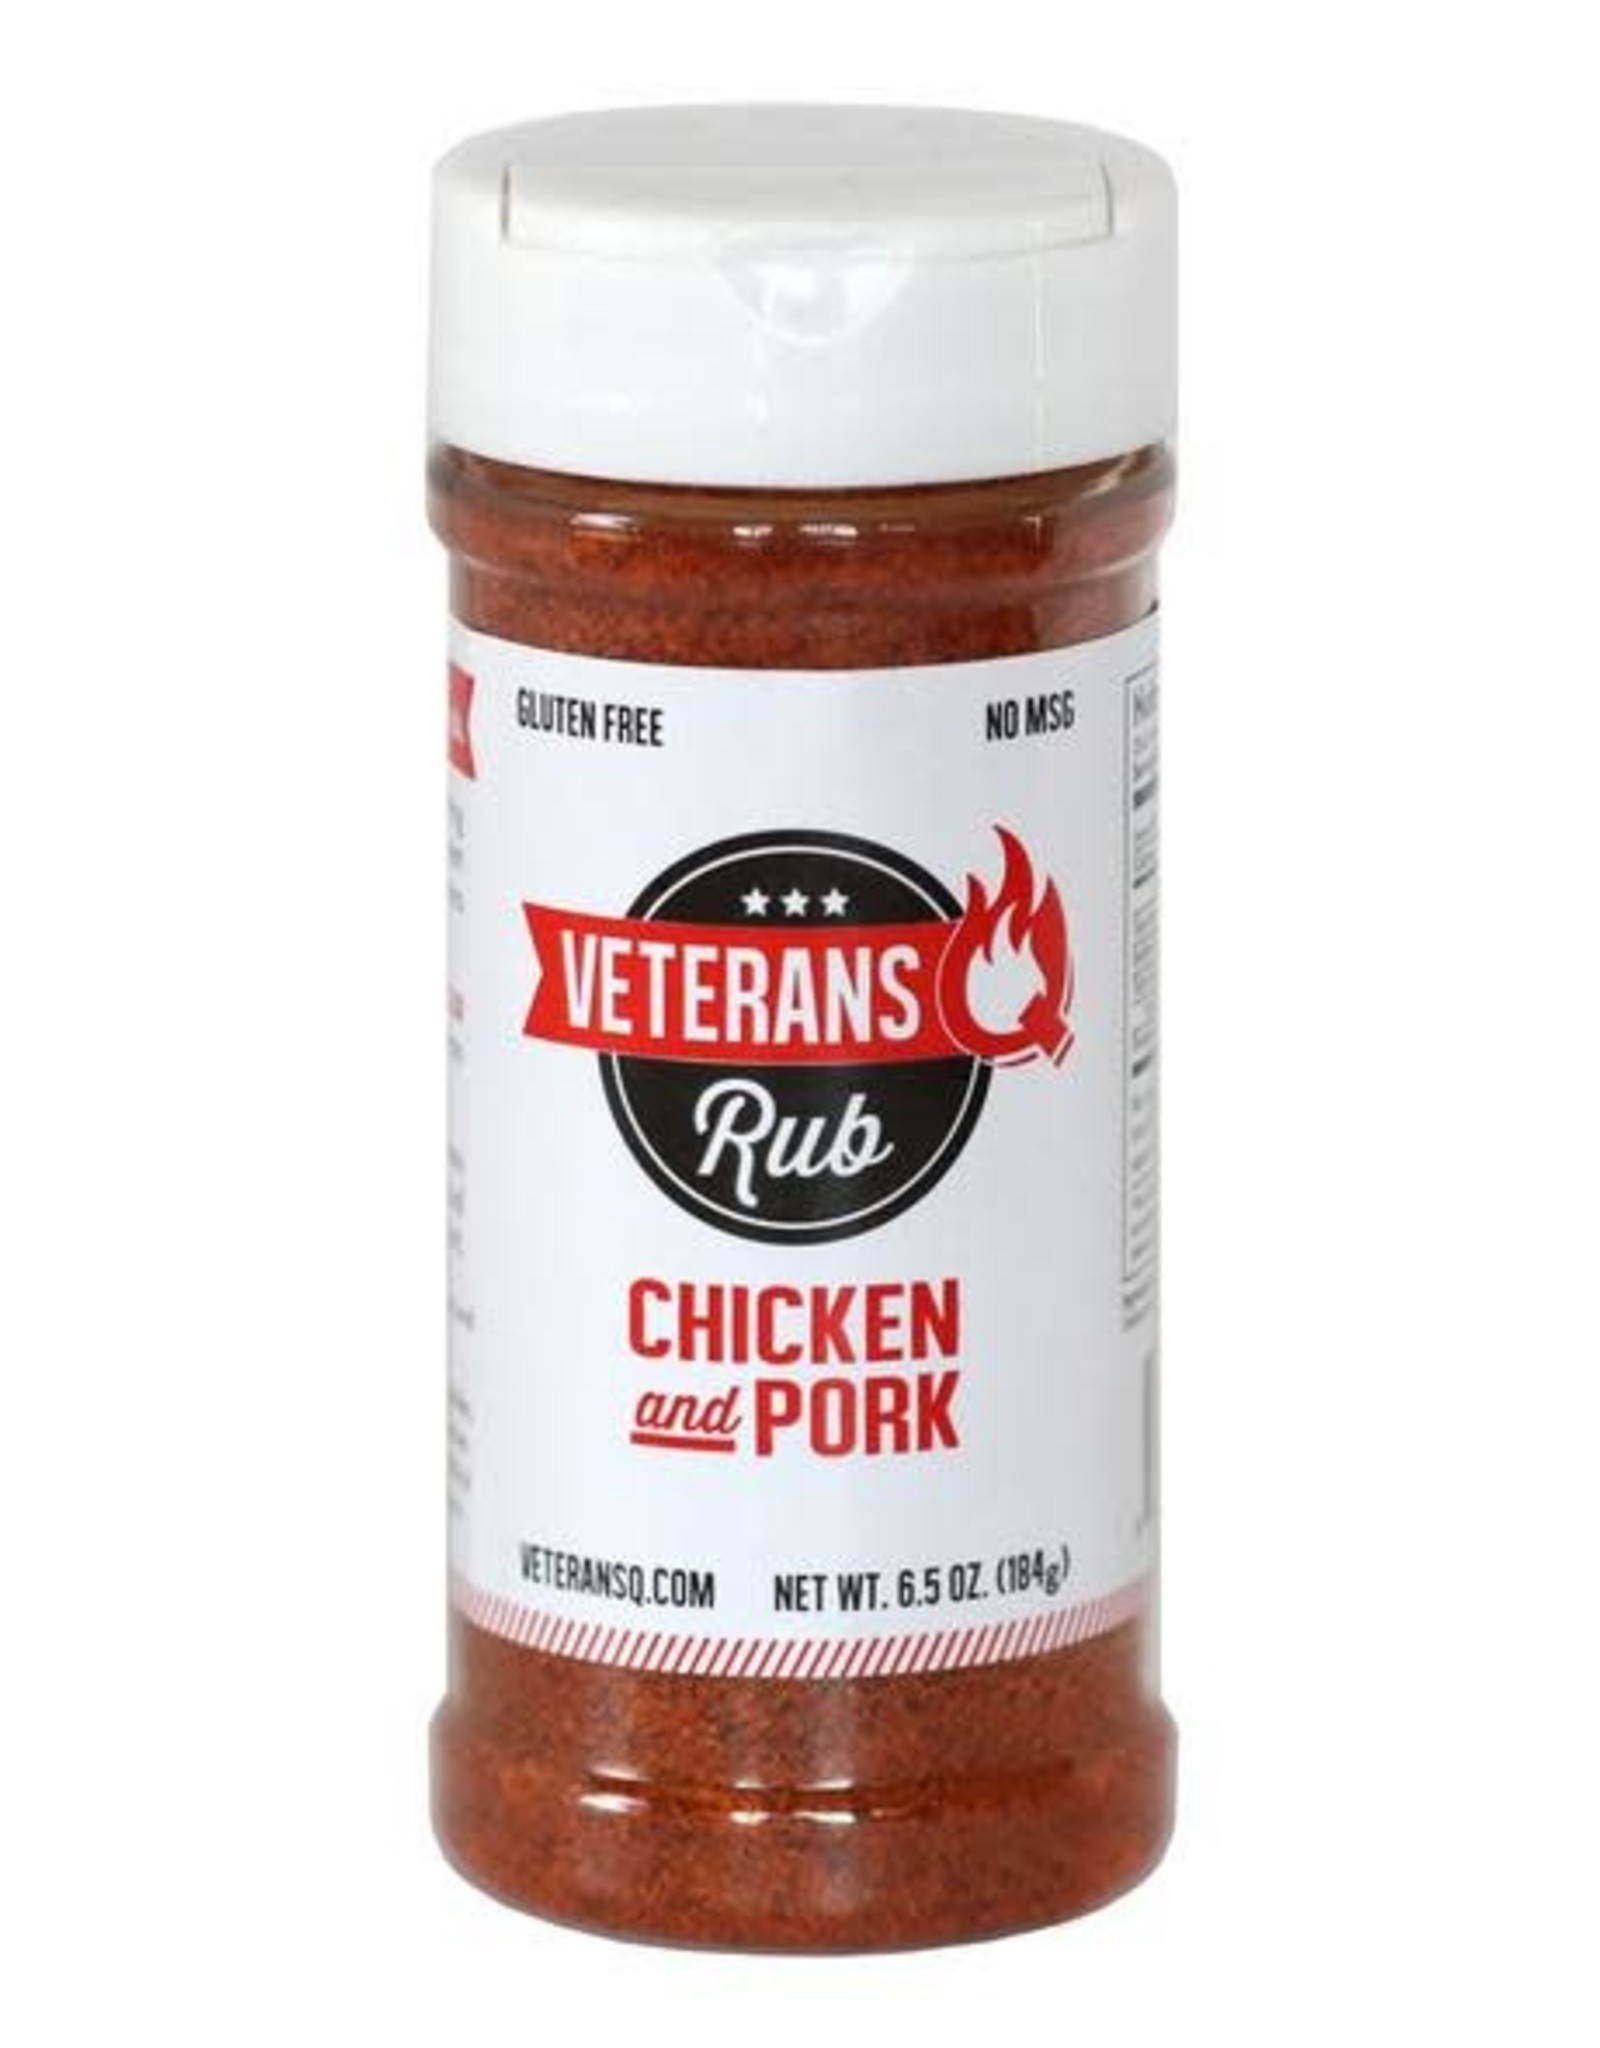 Veteran's Q Chicken & Pork Rub, 6.5oz.